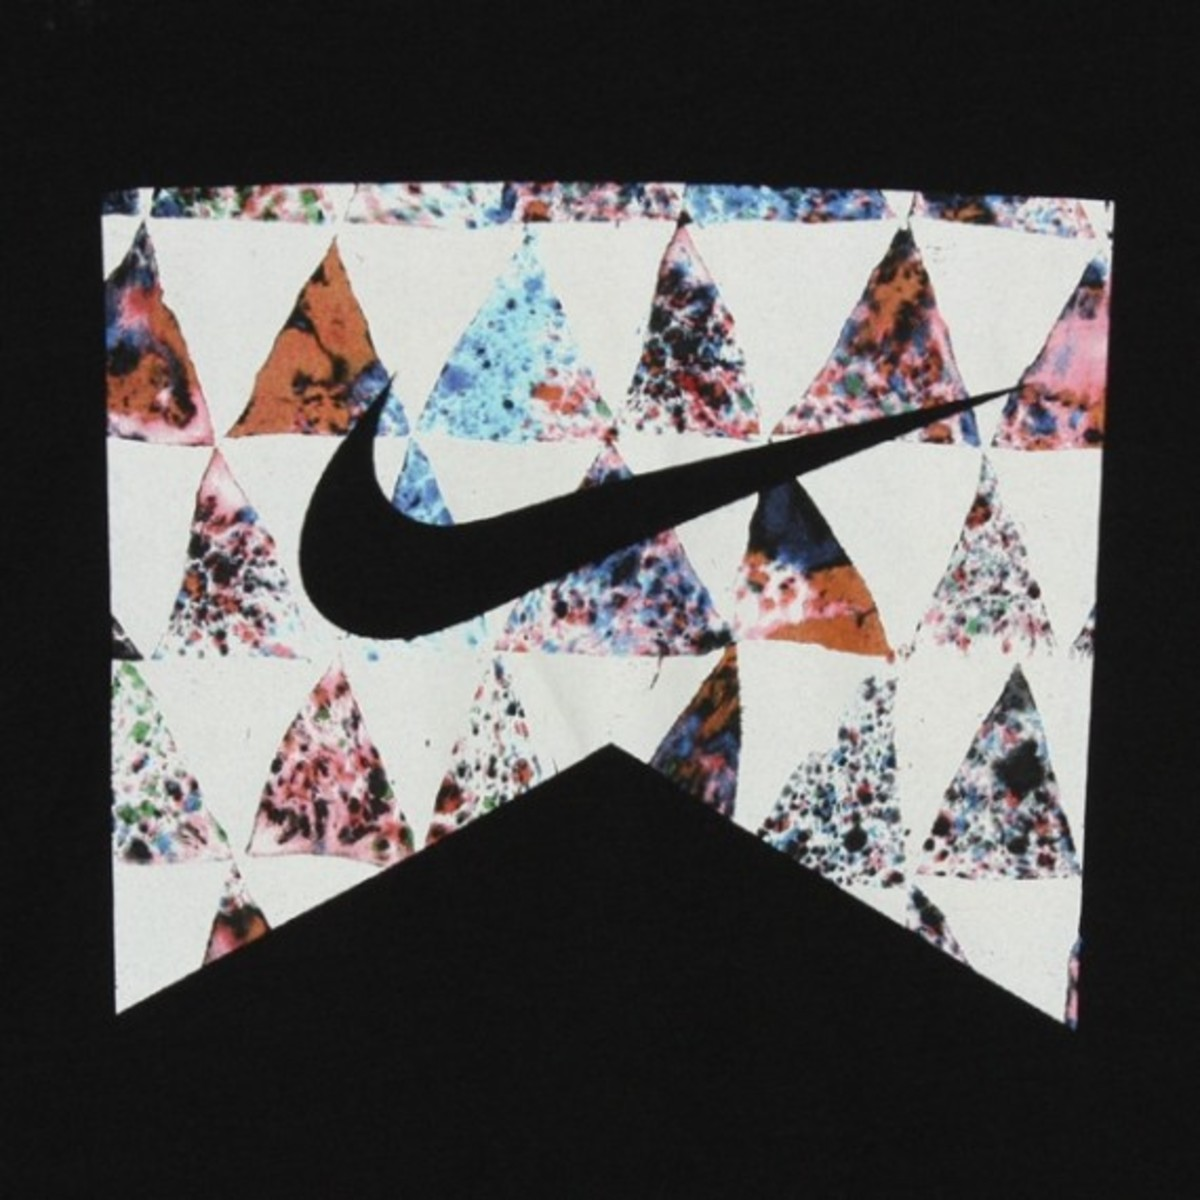 neckface-for-nike-sb-spring-summer-2013-capsule-collection-03